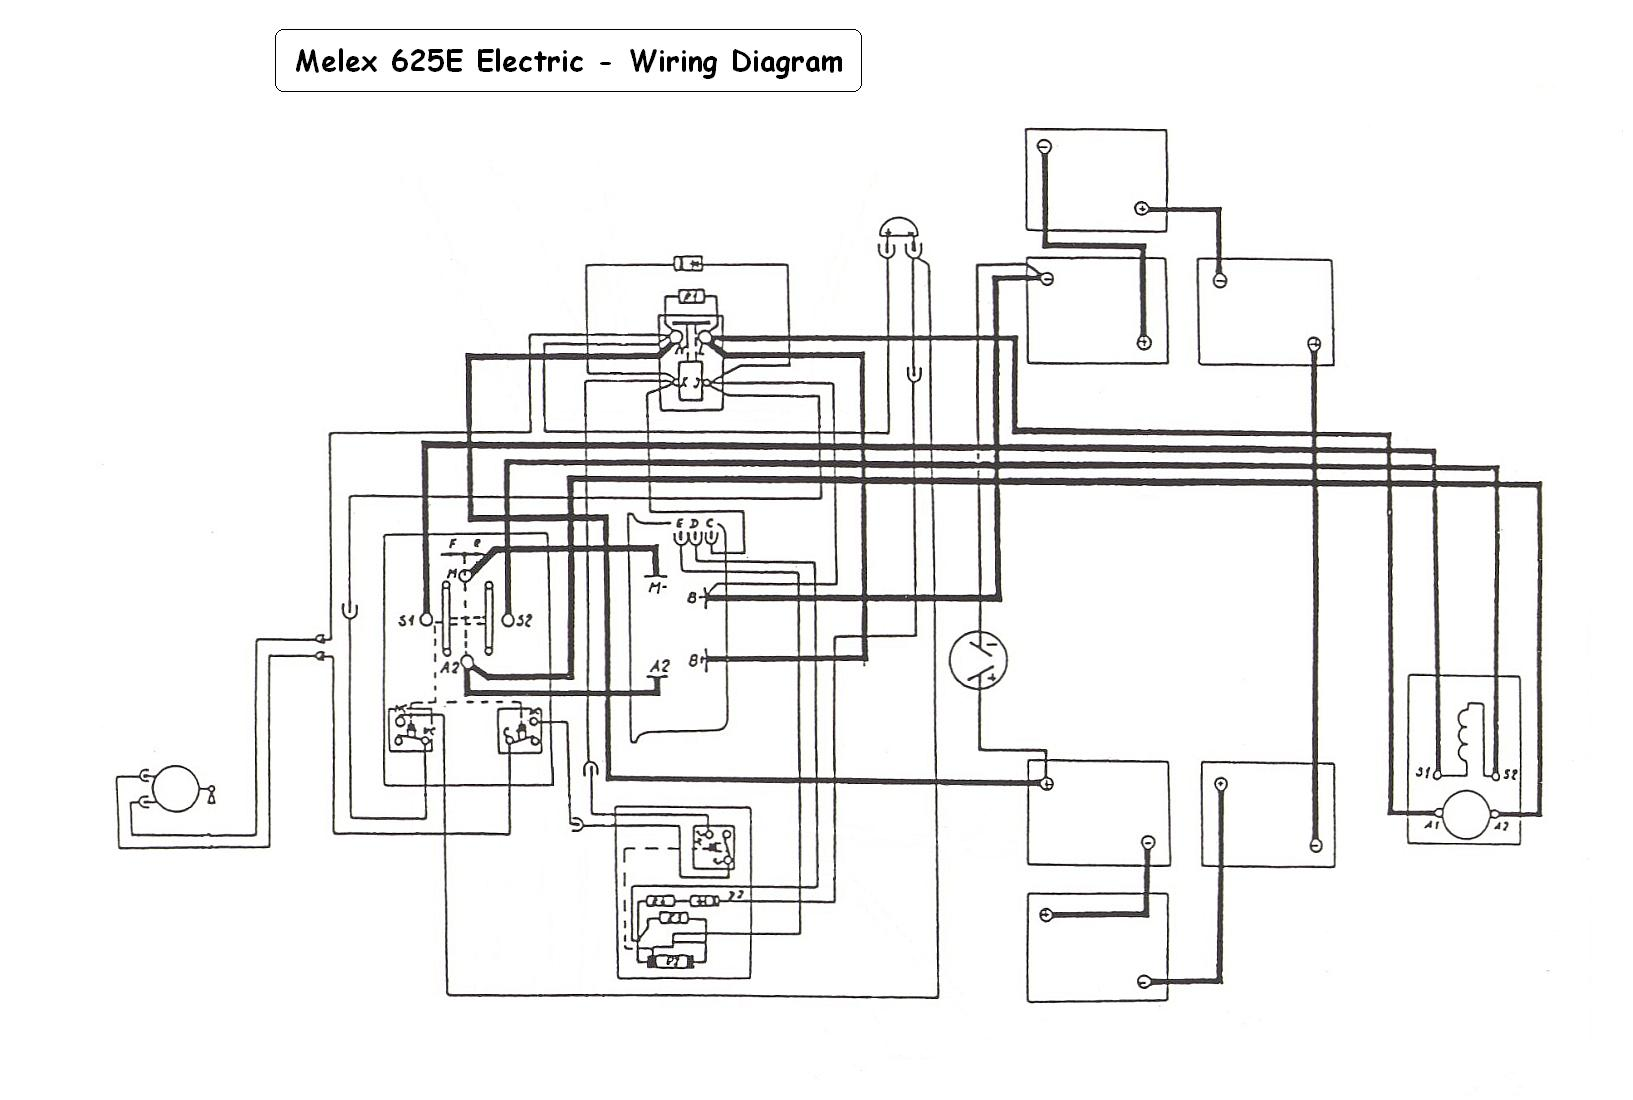 Wiring Diagram For Yamaha G9 Golf Cart